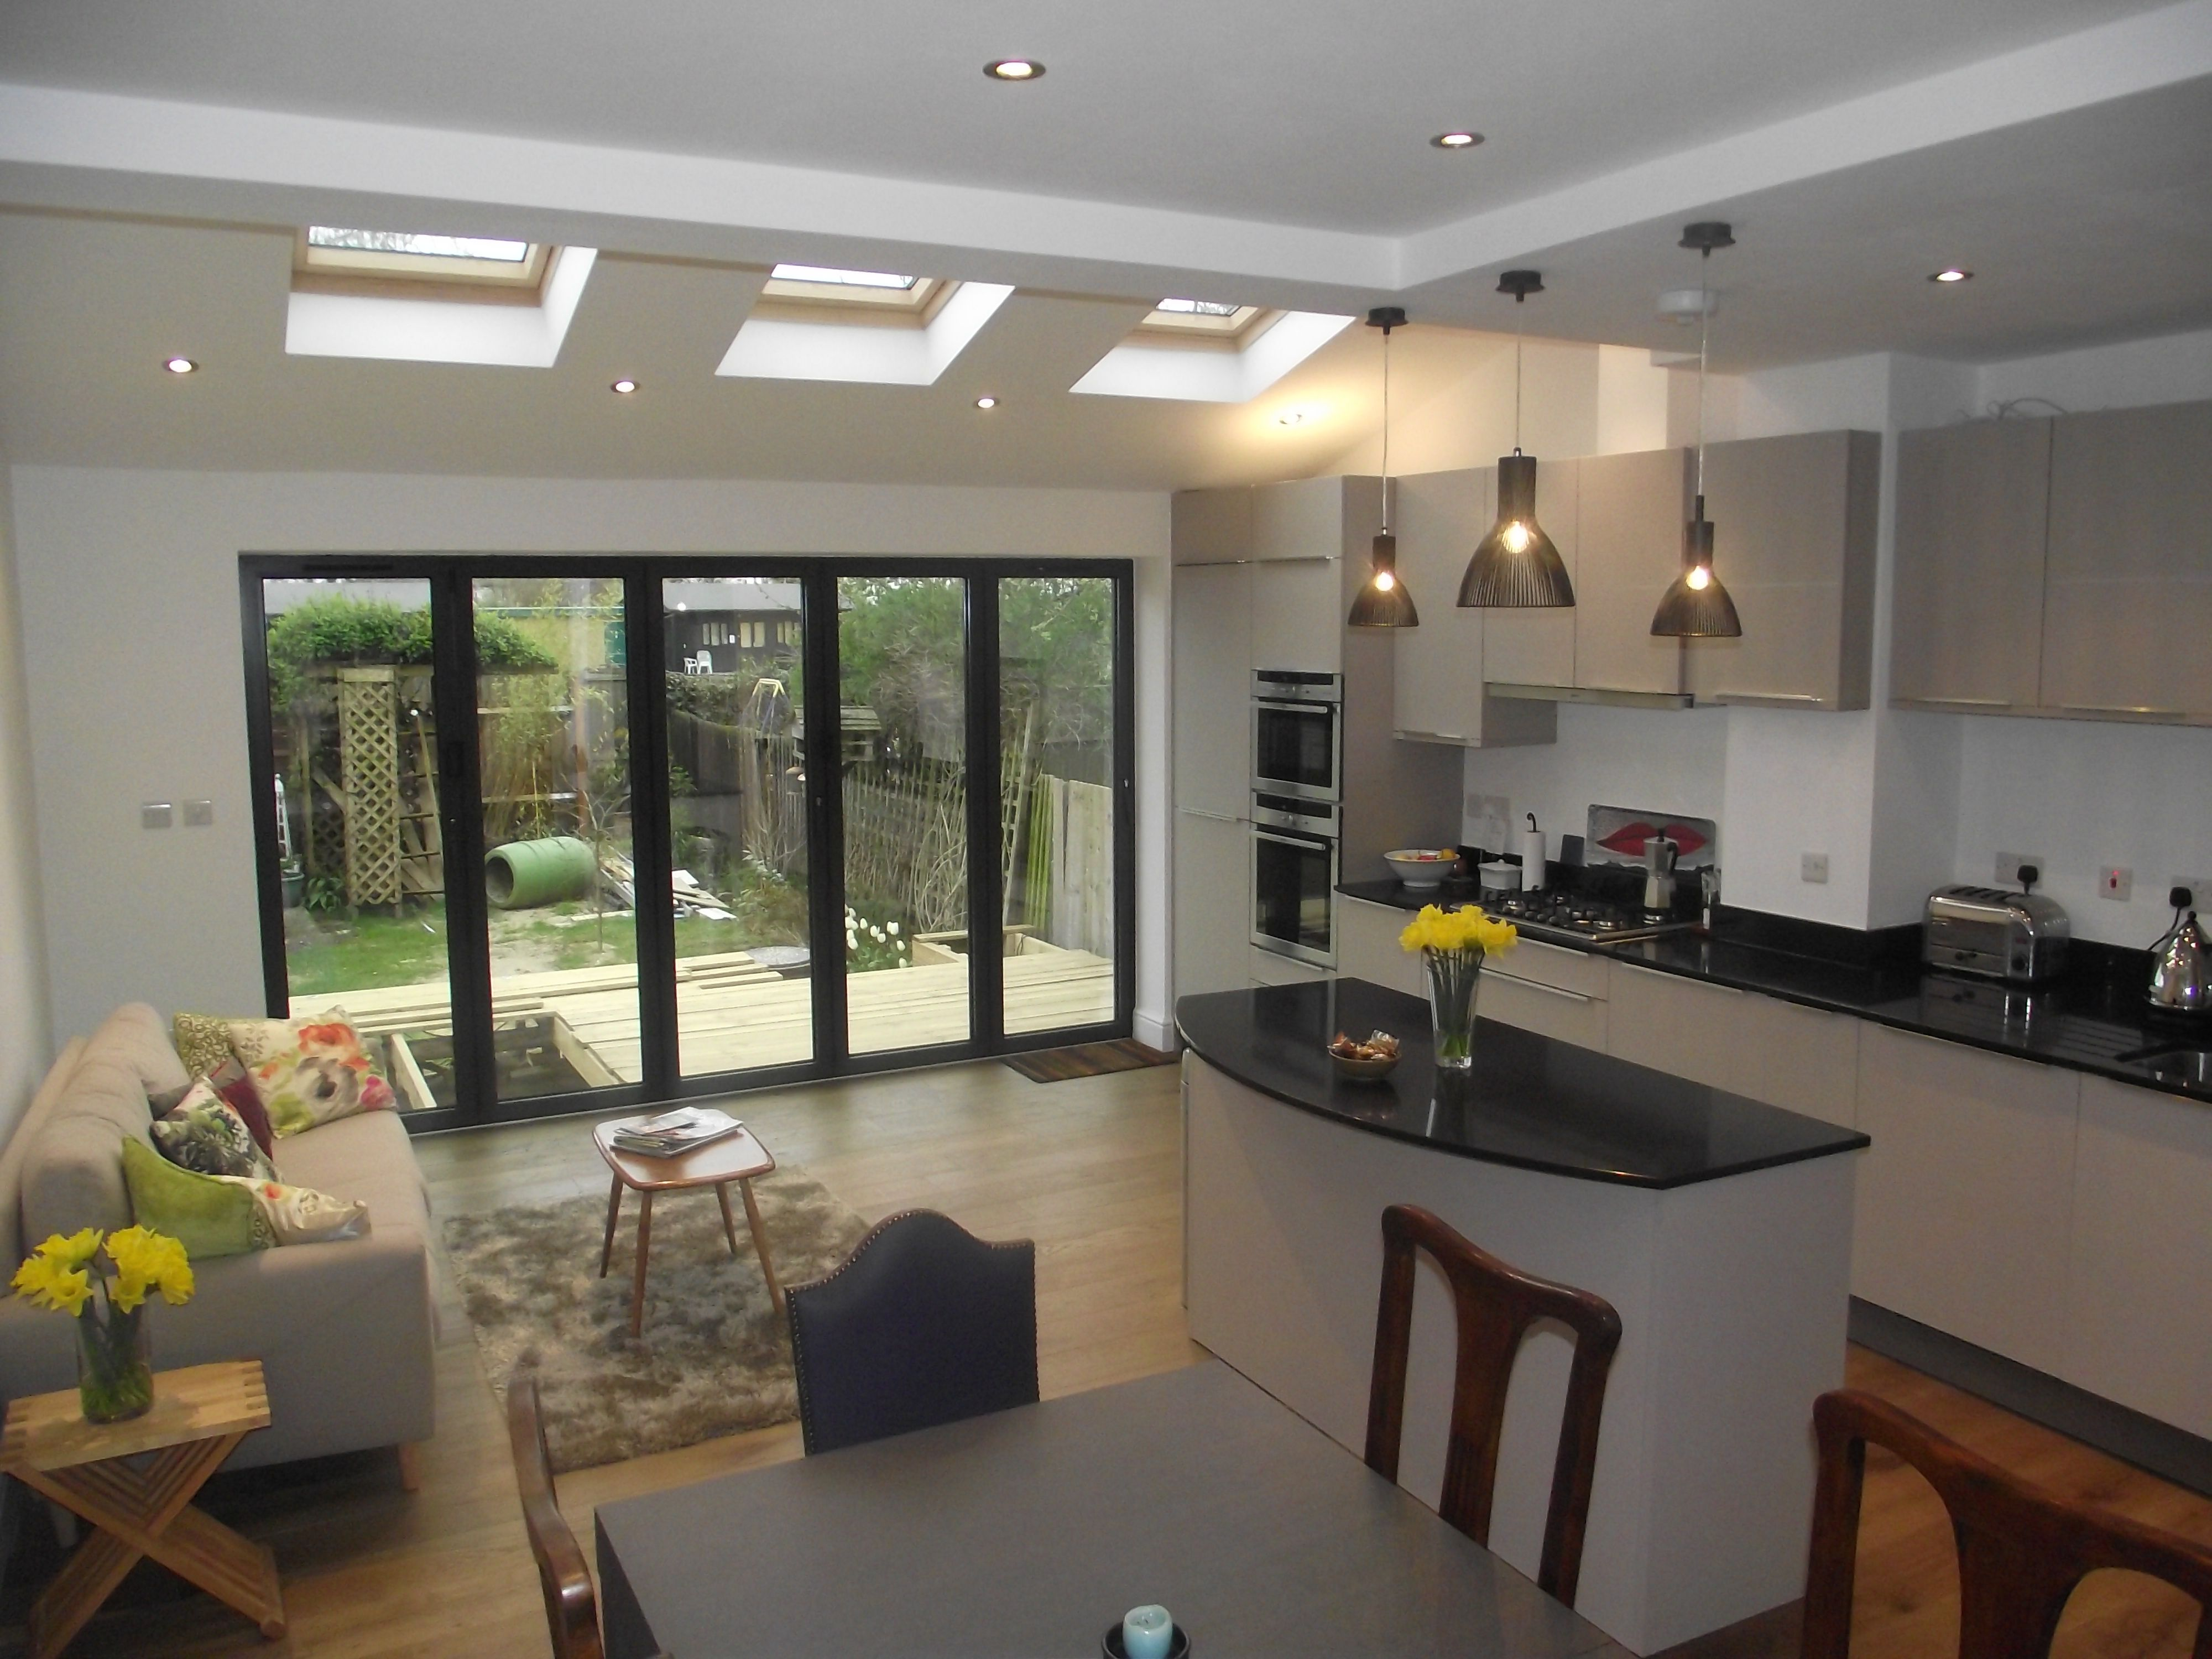 House Extension Ideas & Designs House Extension Photo